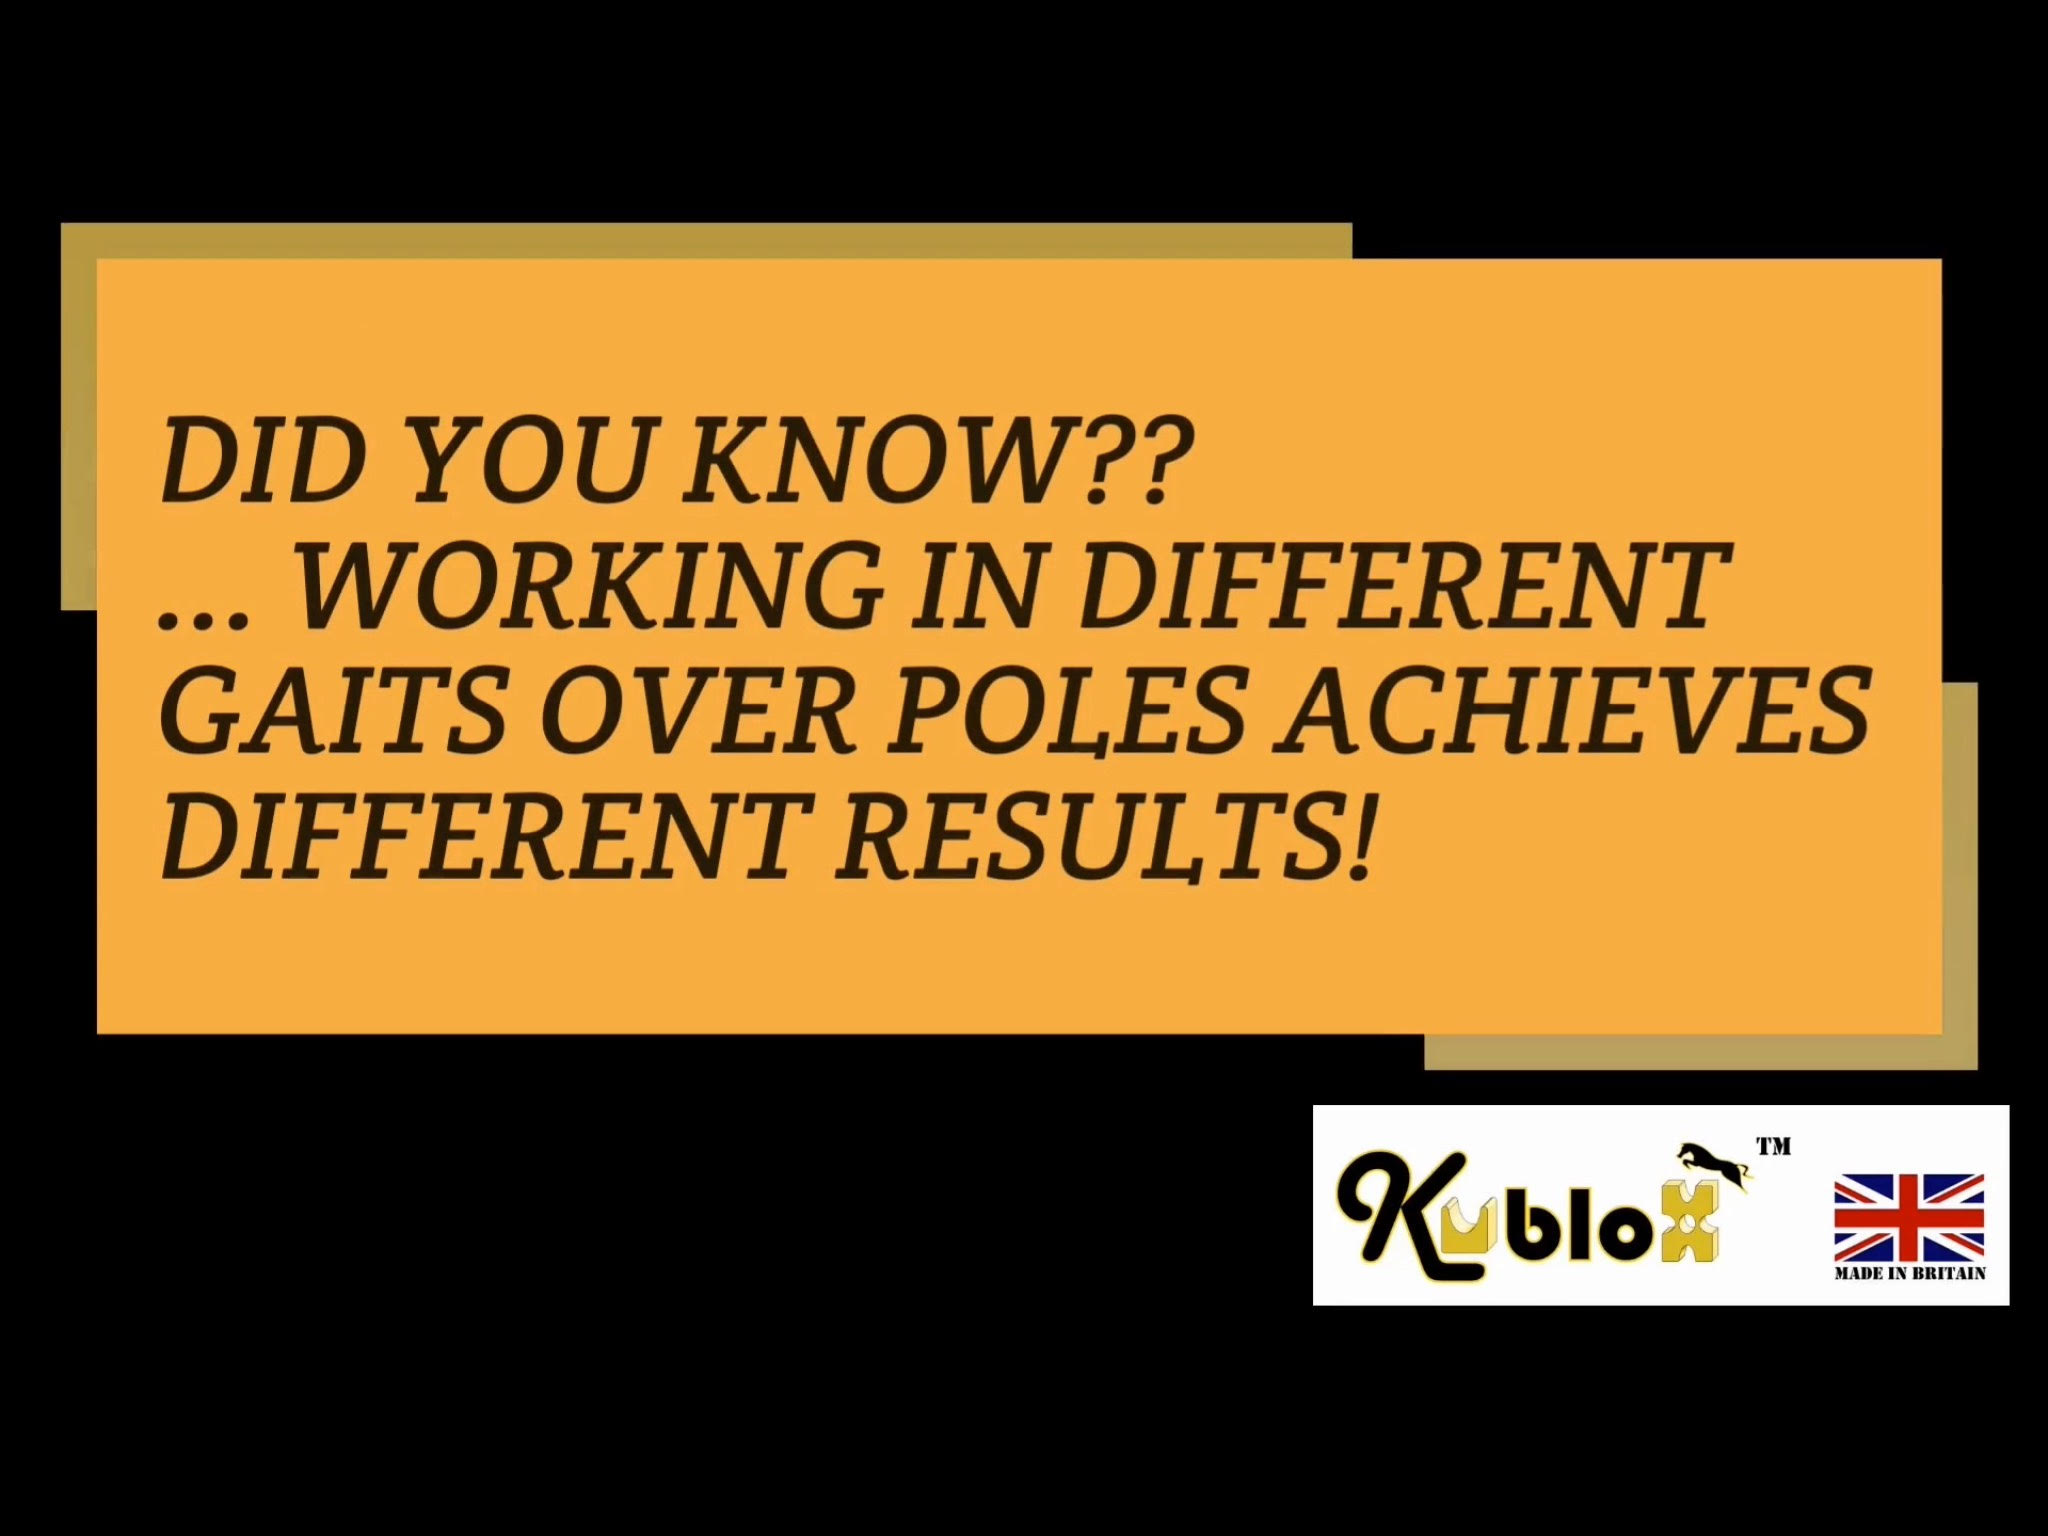 What do different gaits over poles achieve?